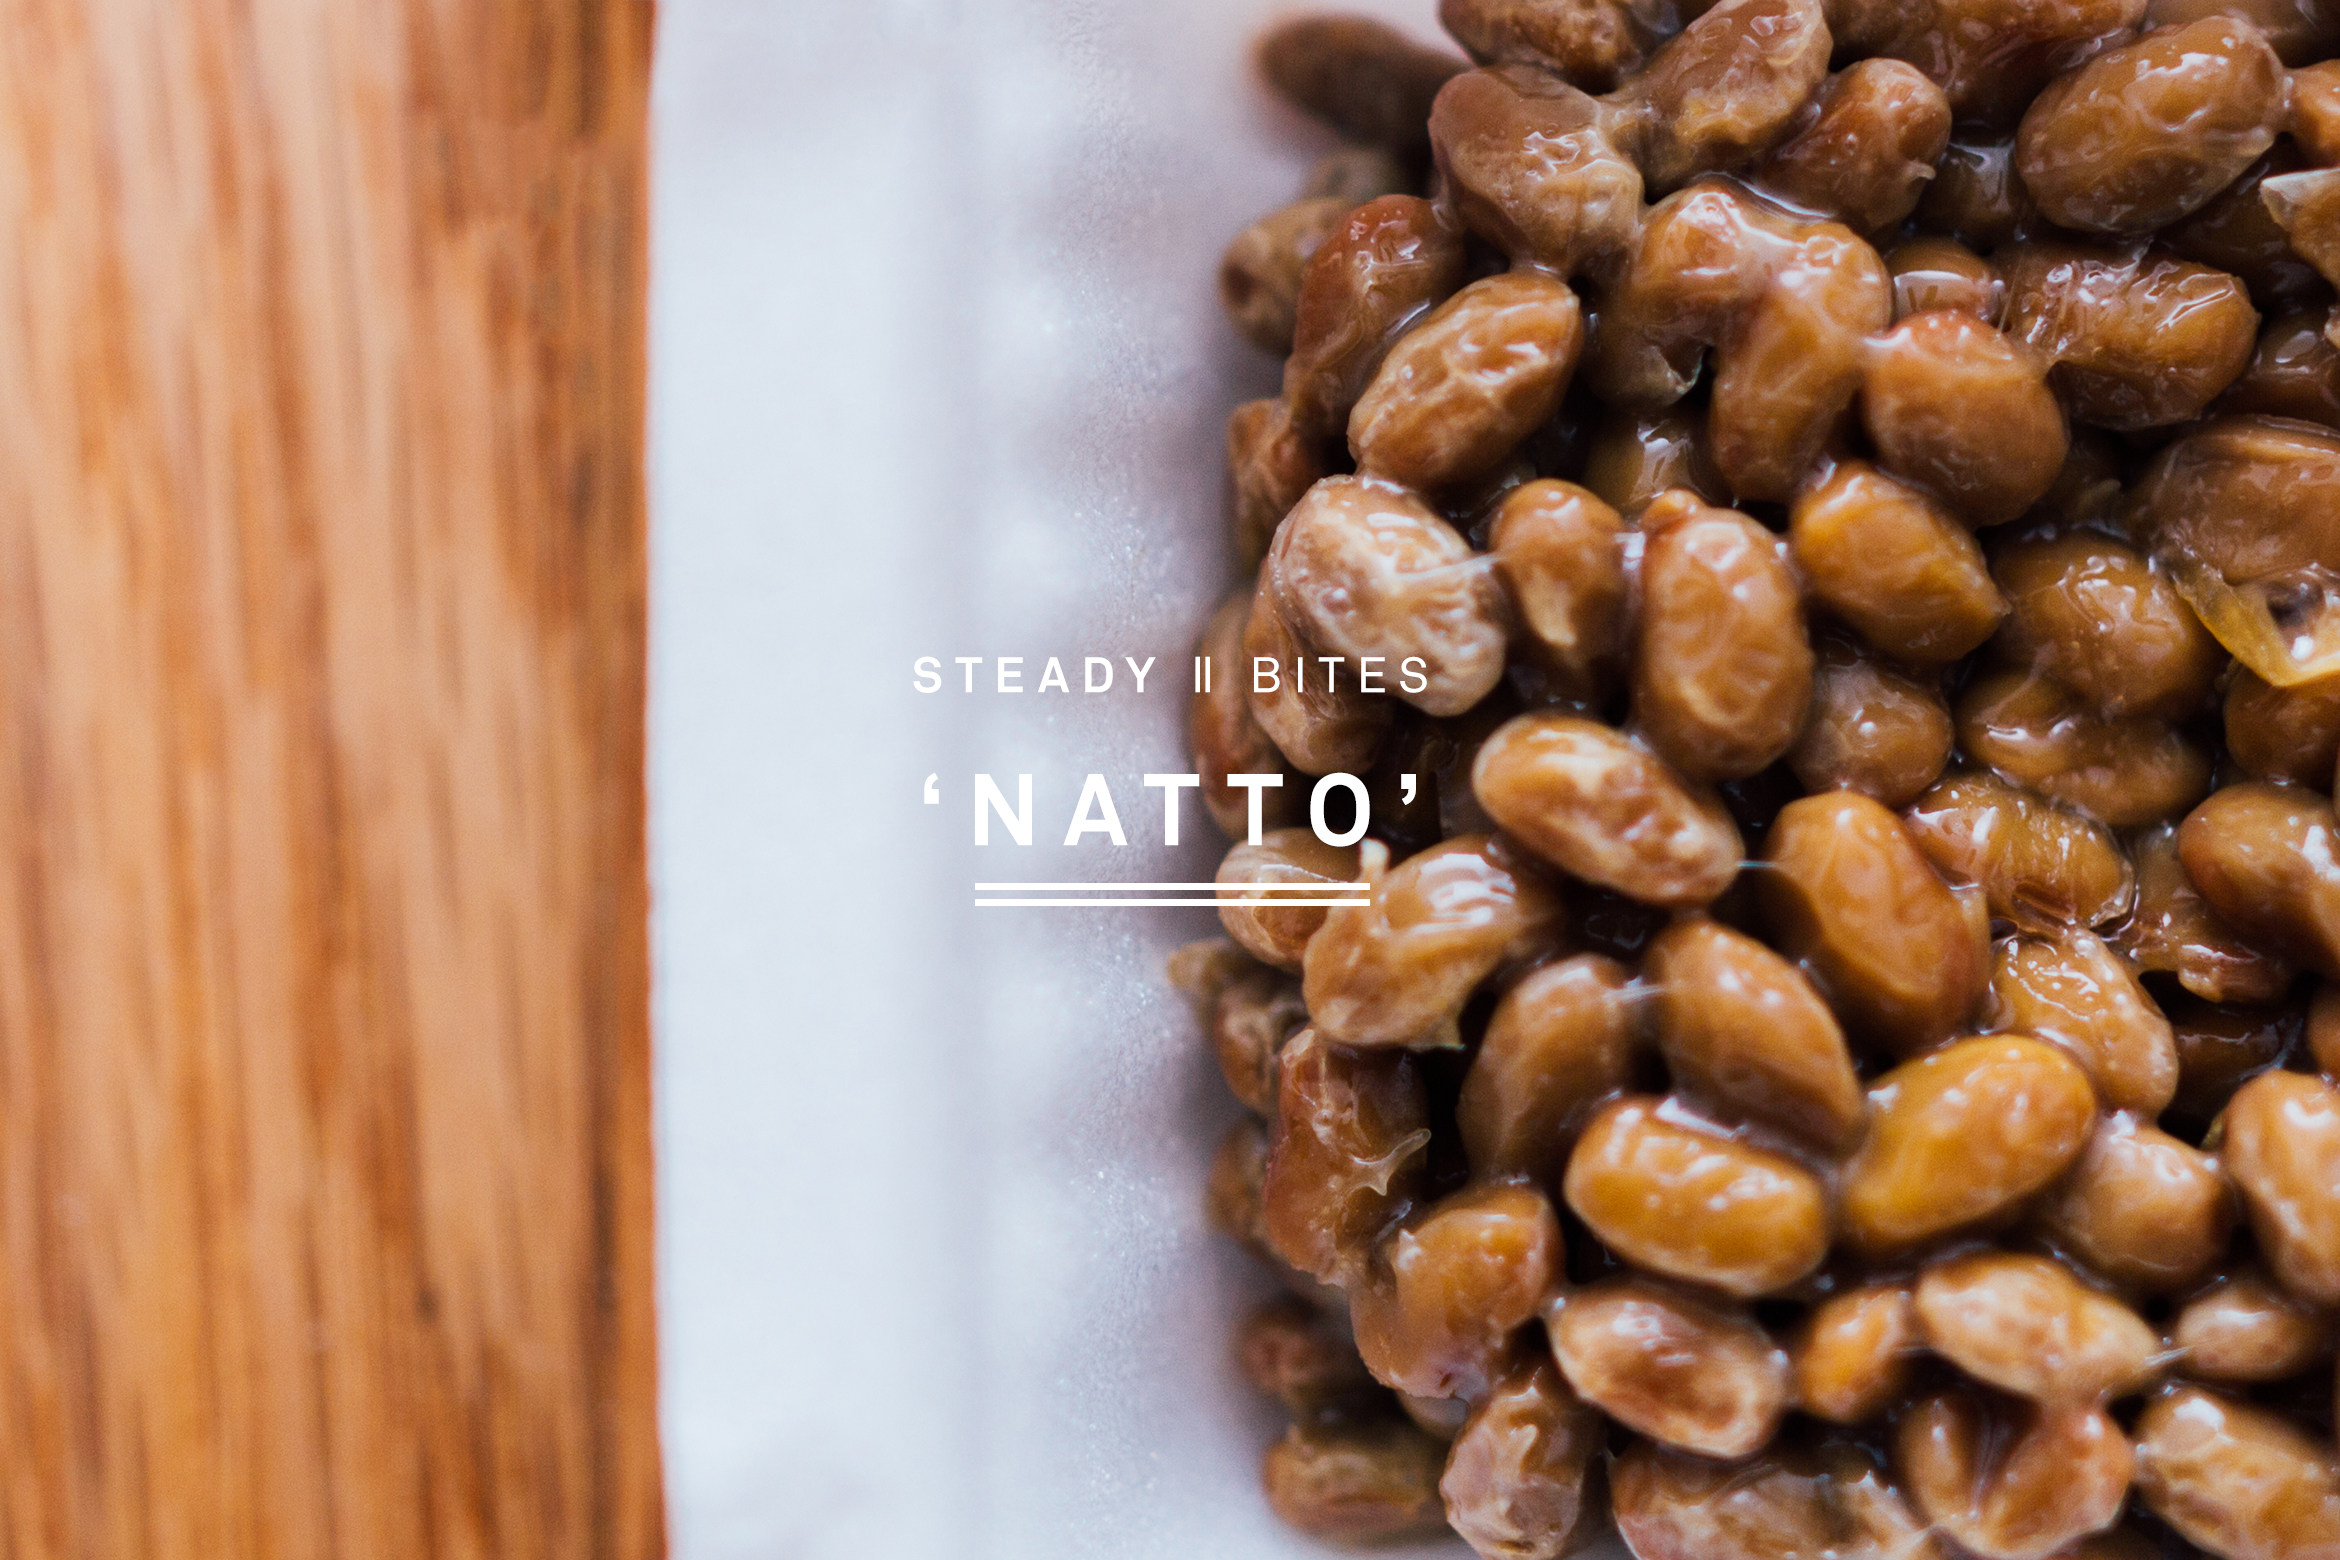 STEADY BITES: NATTO